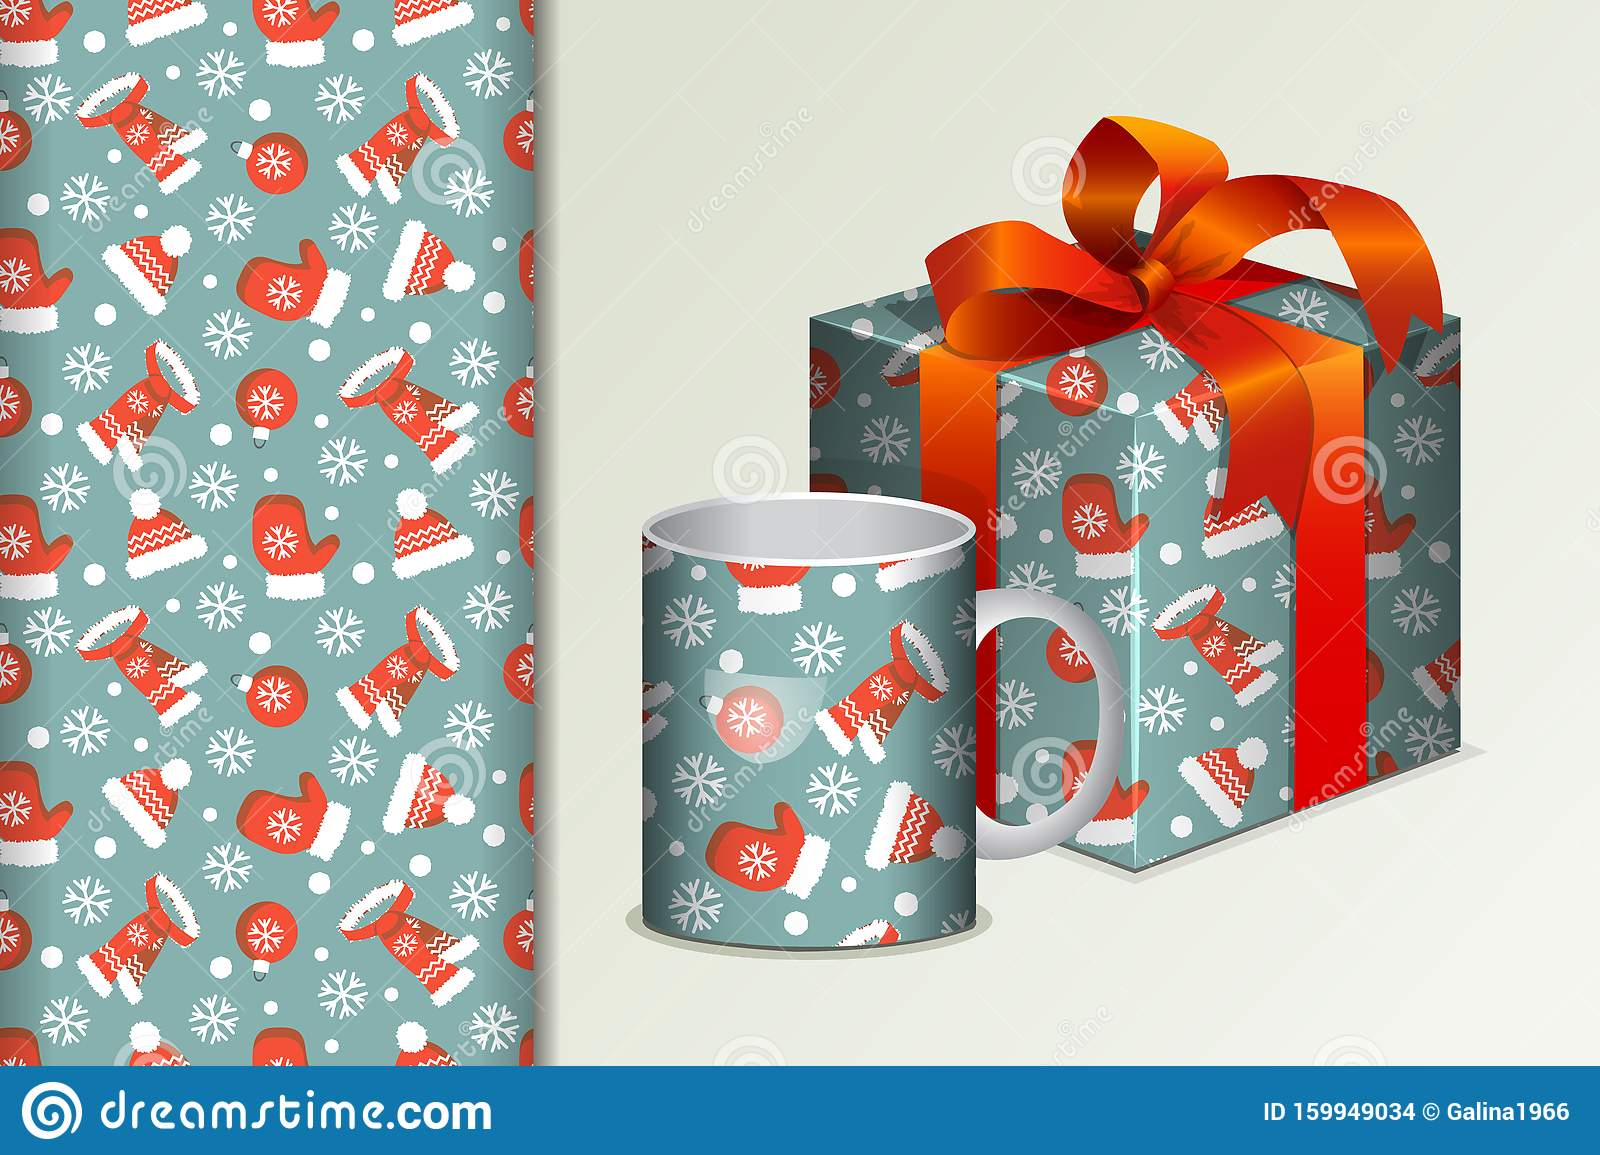 seamless background gift and mug and mock up with snowman and seamless pattern concept for design of fabric and paper for printing stock illustration illustration of geometric postcards 159949034 dreamstime com